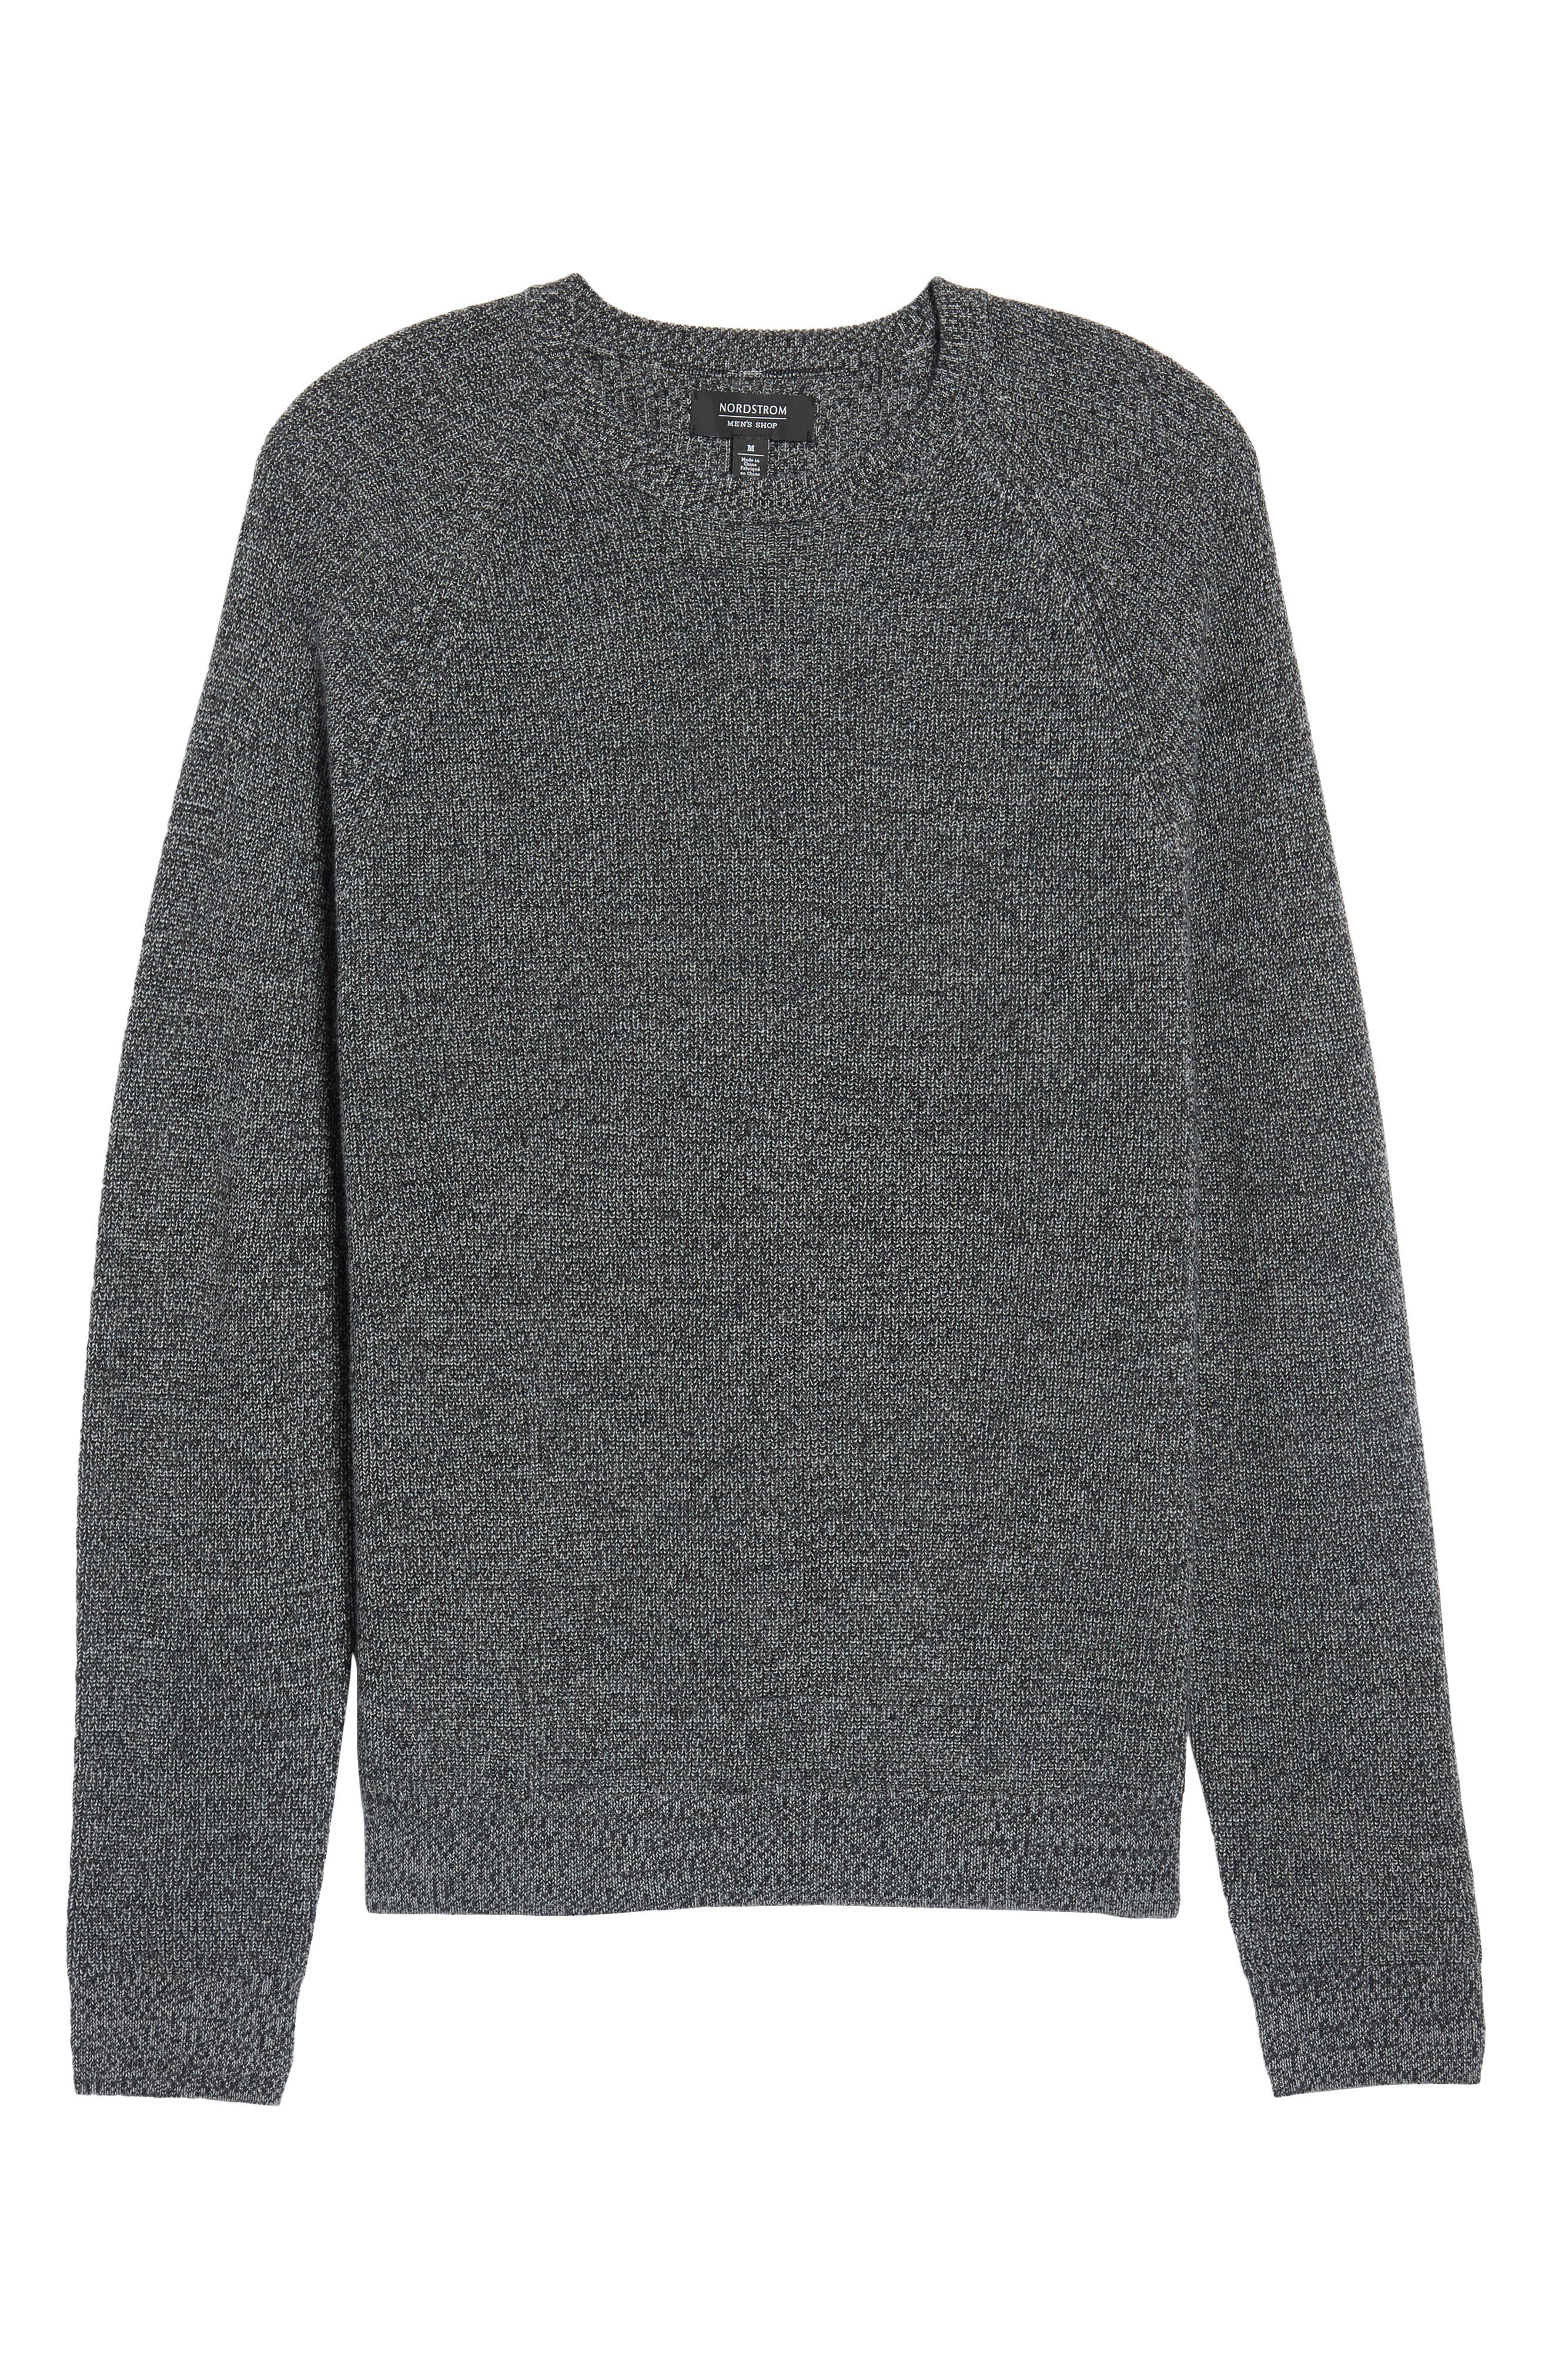 Alternate Image 1 Selected - Nordstrom Men's Shop Textured Merino Wool Blend Sweater